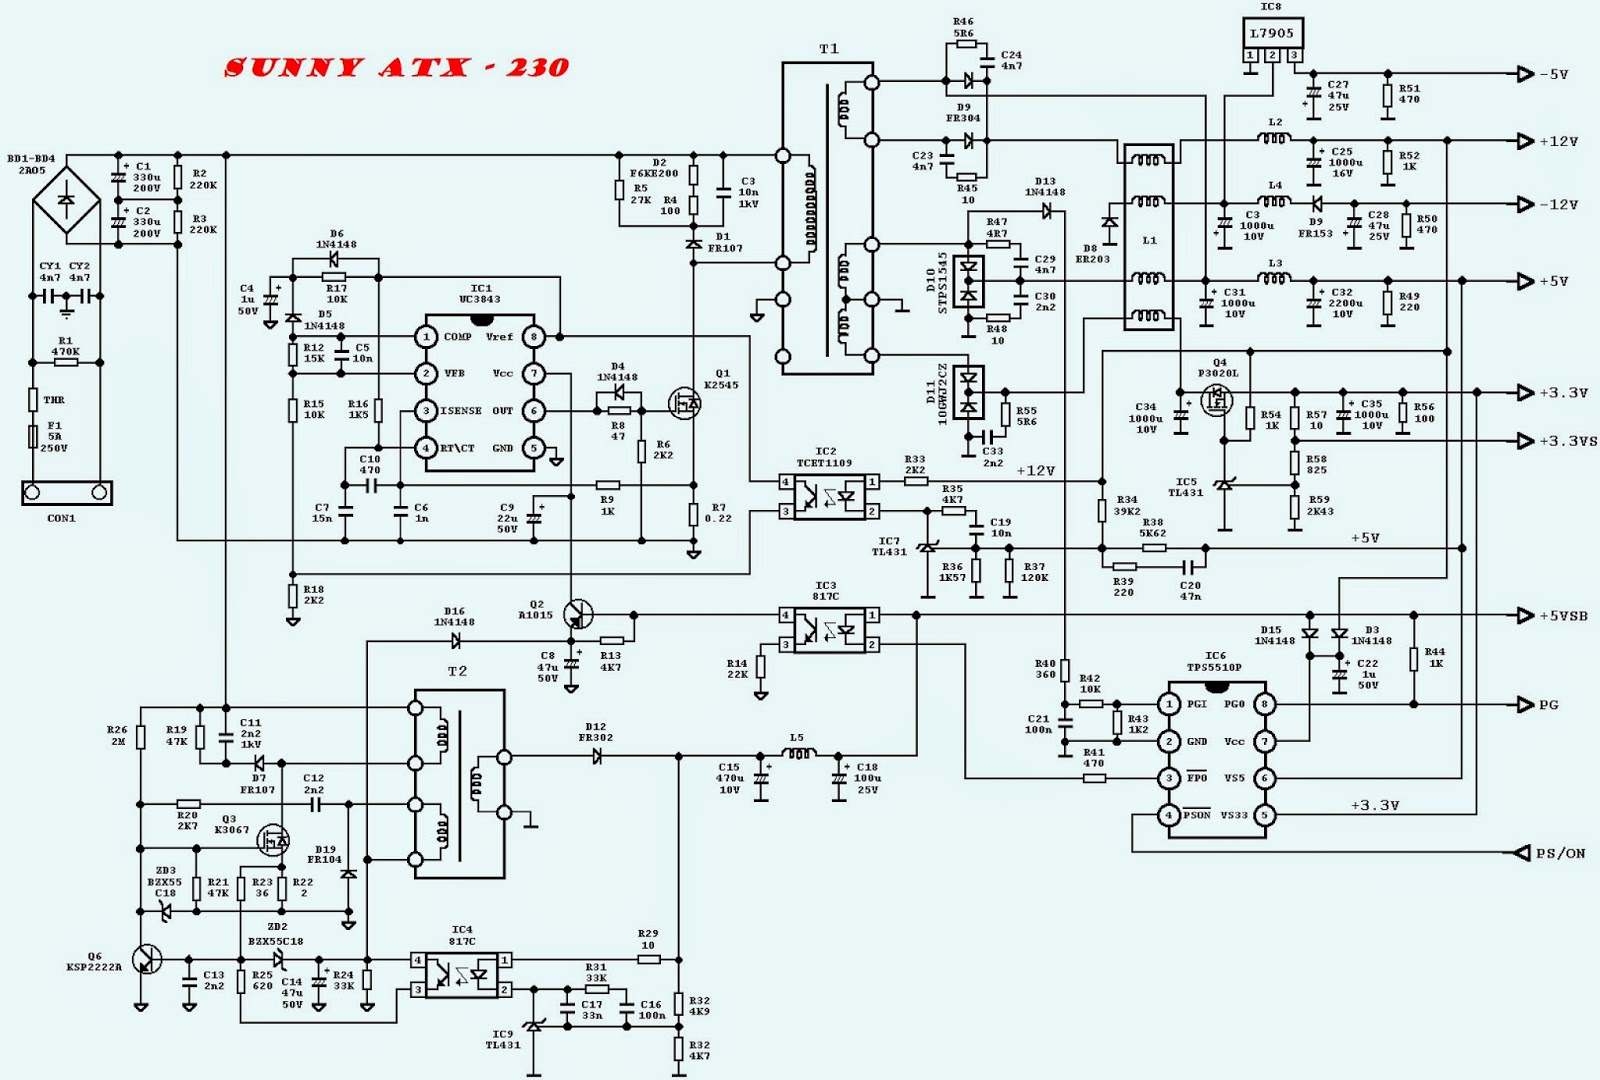 Atx Power Supply Wiring Diagram 3 Phase 4 Pin Plug Australia Desktop Schematics Utiek Atx600t